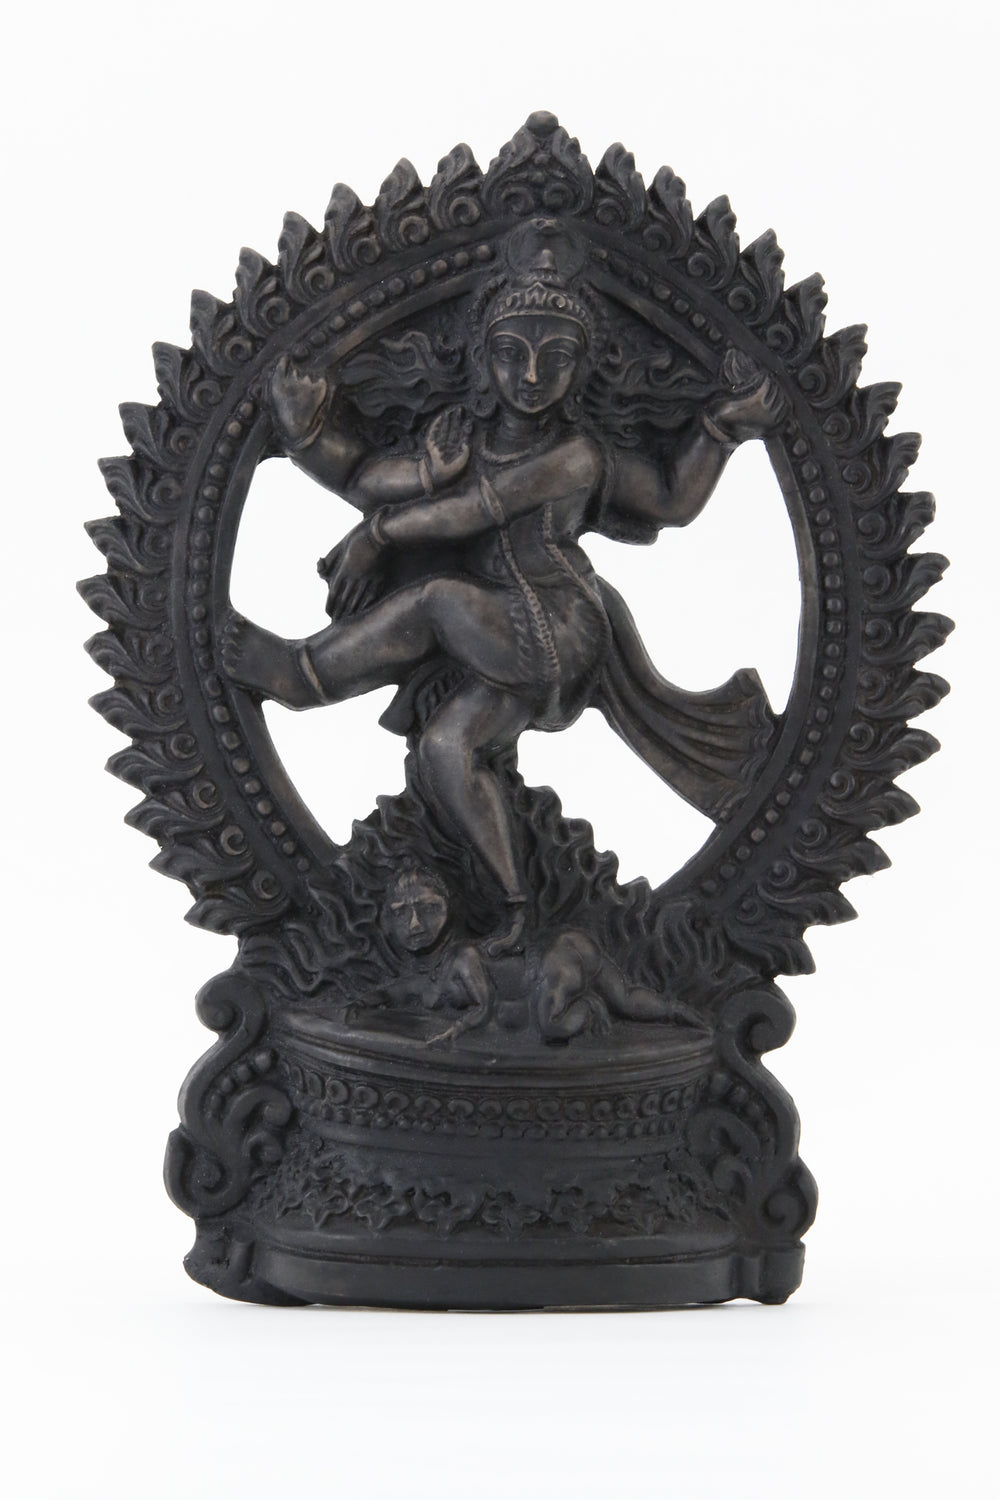 SHIVA DANCING POSE STATUE DARK FRONT VIEW